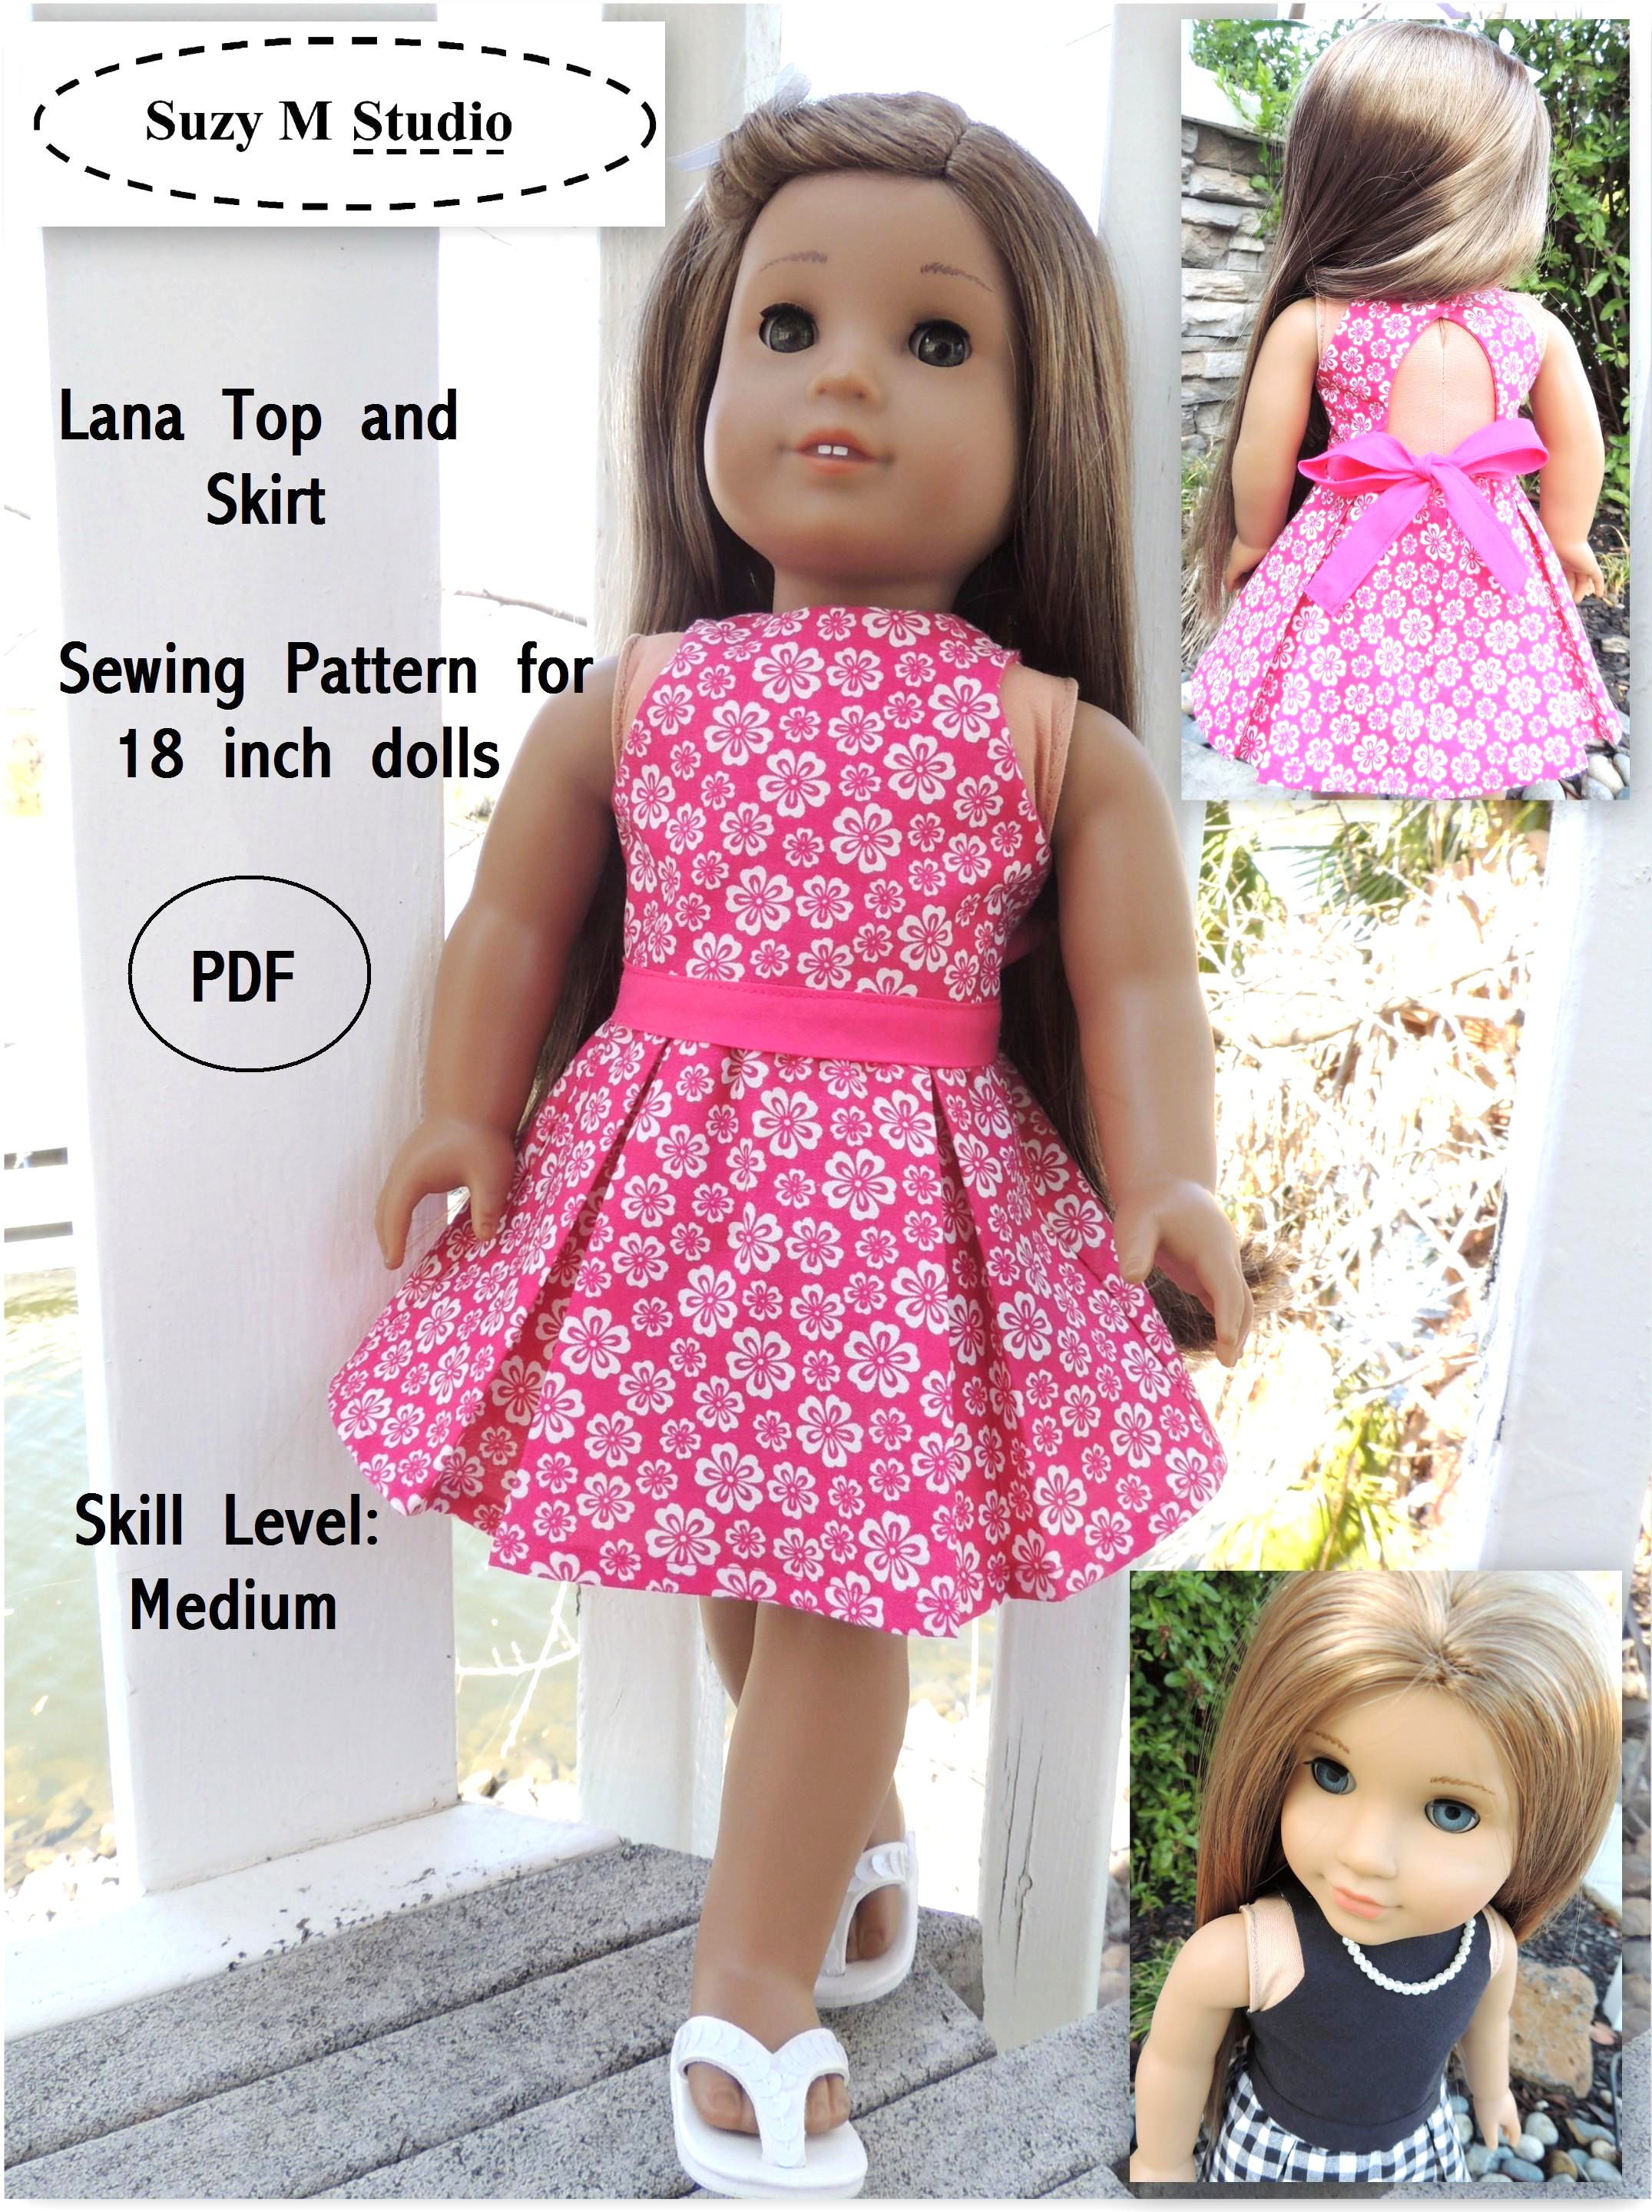 Luxury American Girl Doll Clothing Free American Girl Doll Patterns Of Top 44 Pics Free American Girl Doll Patterns